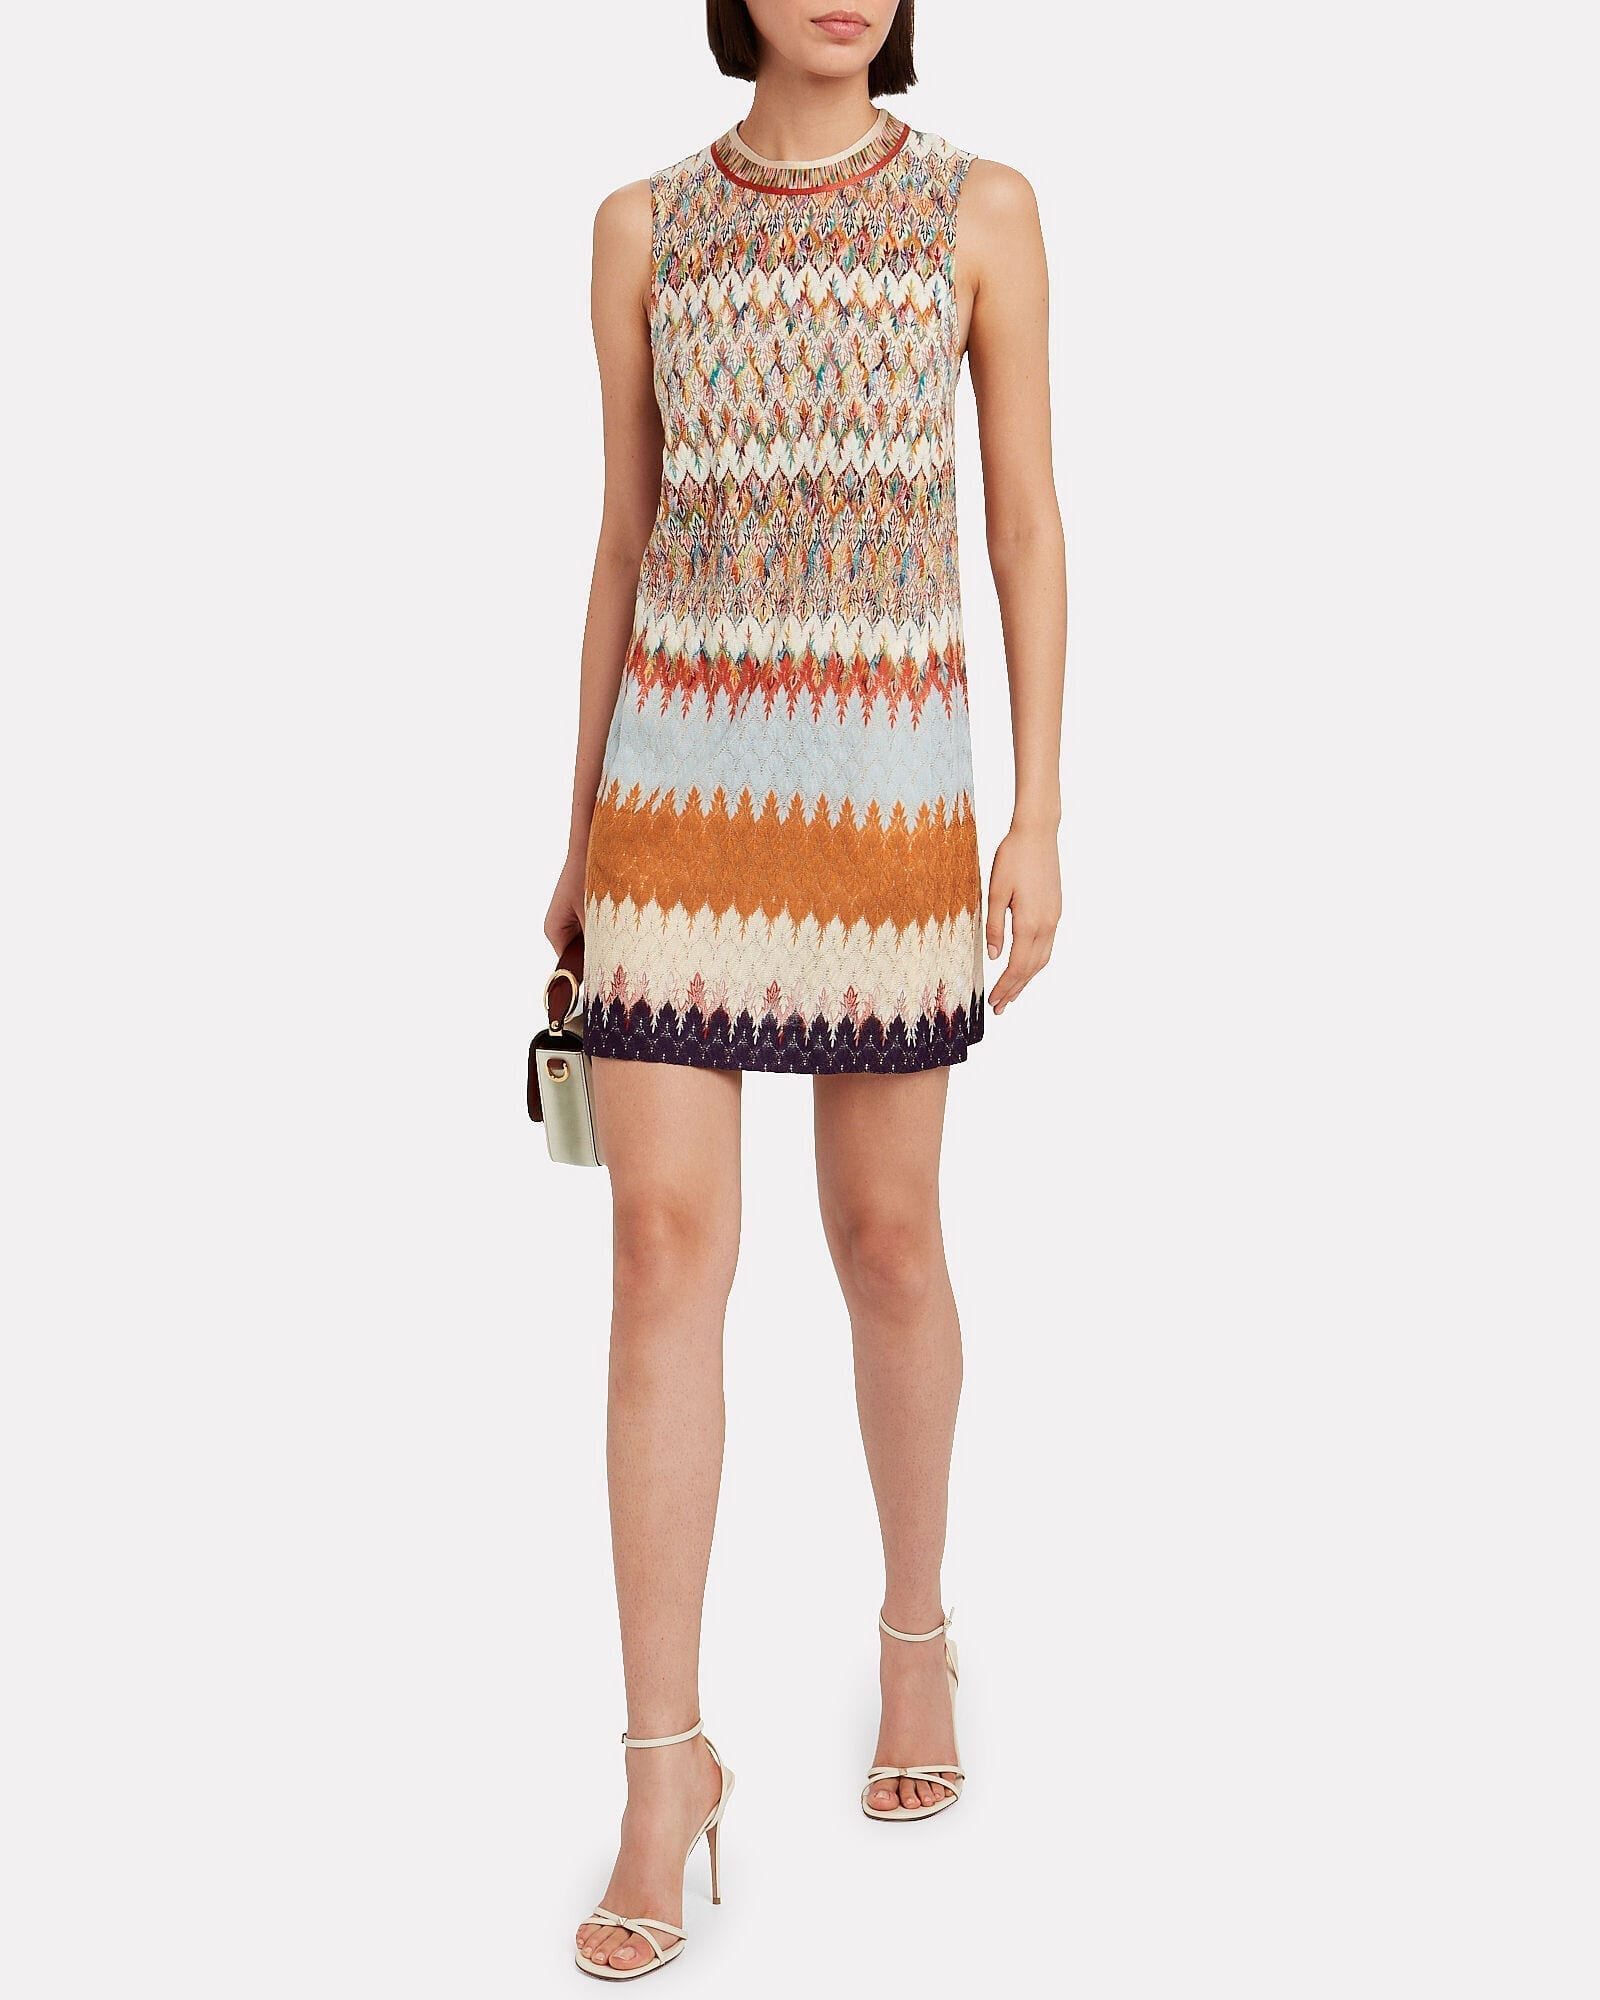 MISSONI Jacquard Knit Shift Dress